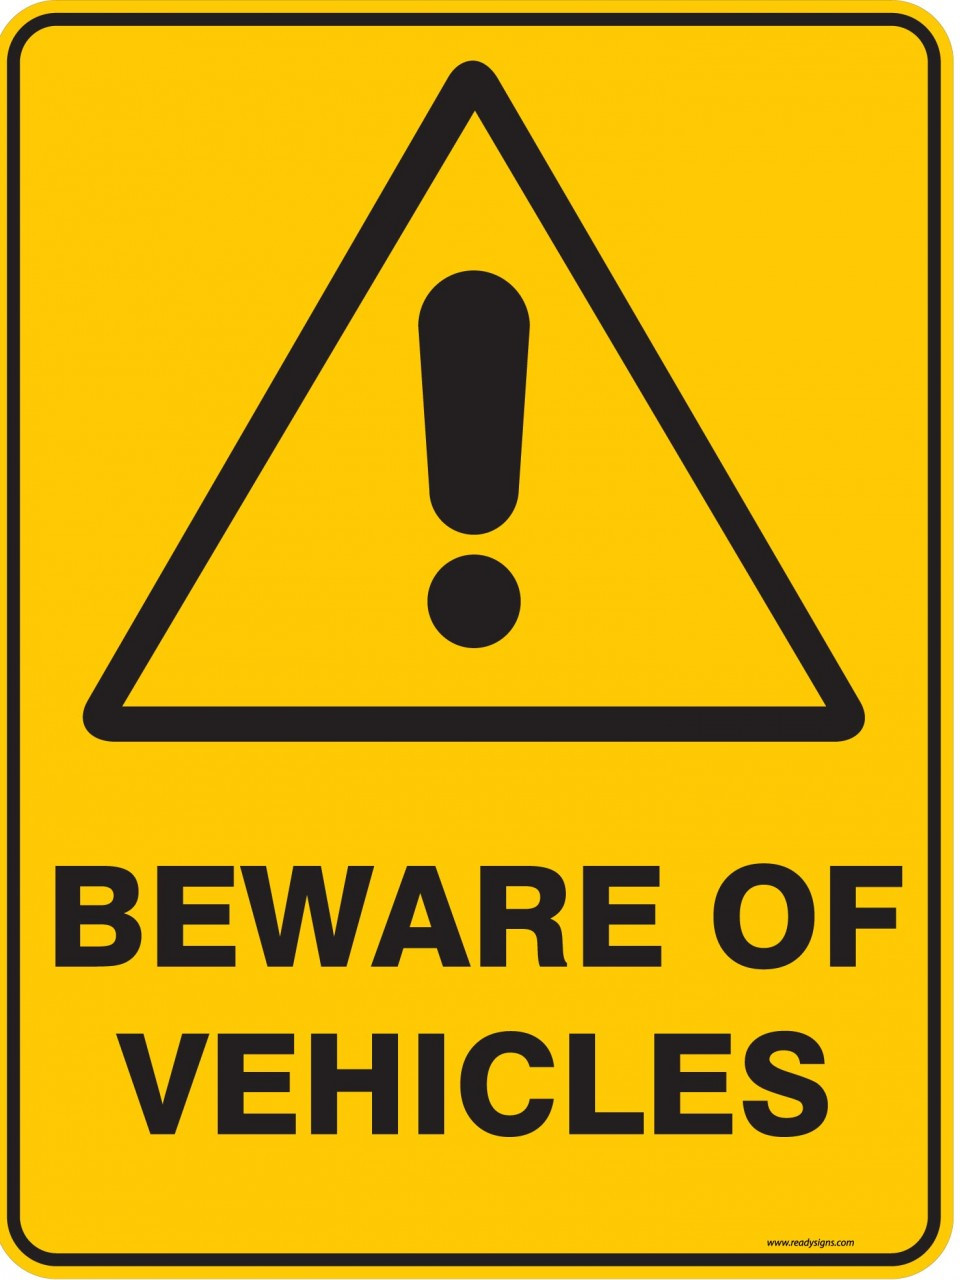 Warning Sign  Beware Of Vehicles  Ready Signs. 1800 General Now Insurance Whats The Best Ira. Product Development Certification. Internet Marketers For Hire Dr Tooma Lasik. Culinary School Rankings Columbus Tv Stations. Cheap Divorce Lawyers In Queens Ny. Loft Factory Store Coupon Website Menu Design. Law School Personal Statement Prompt. Culinary School In Texas San Fernando College